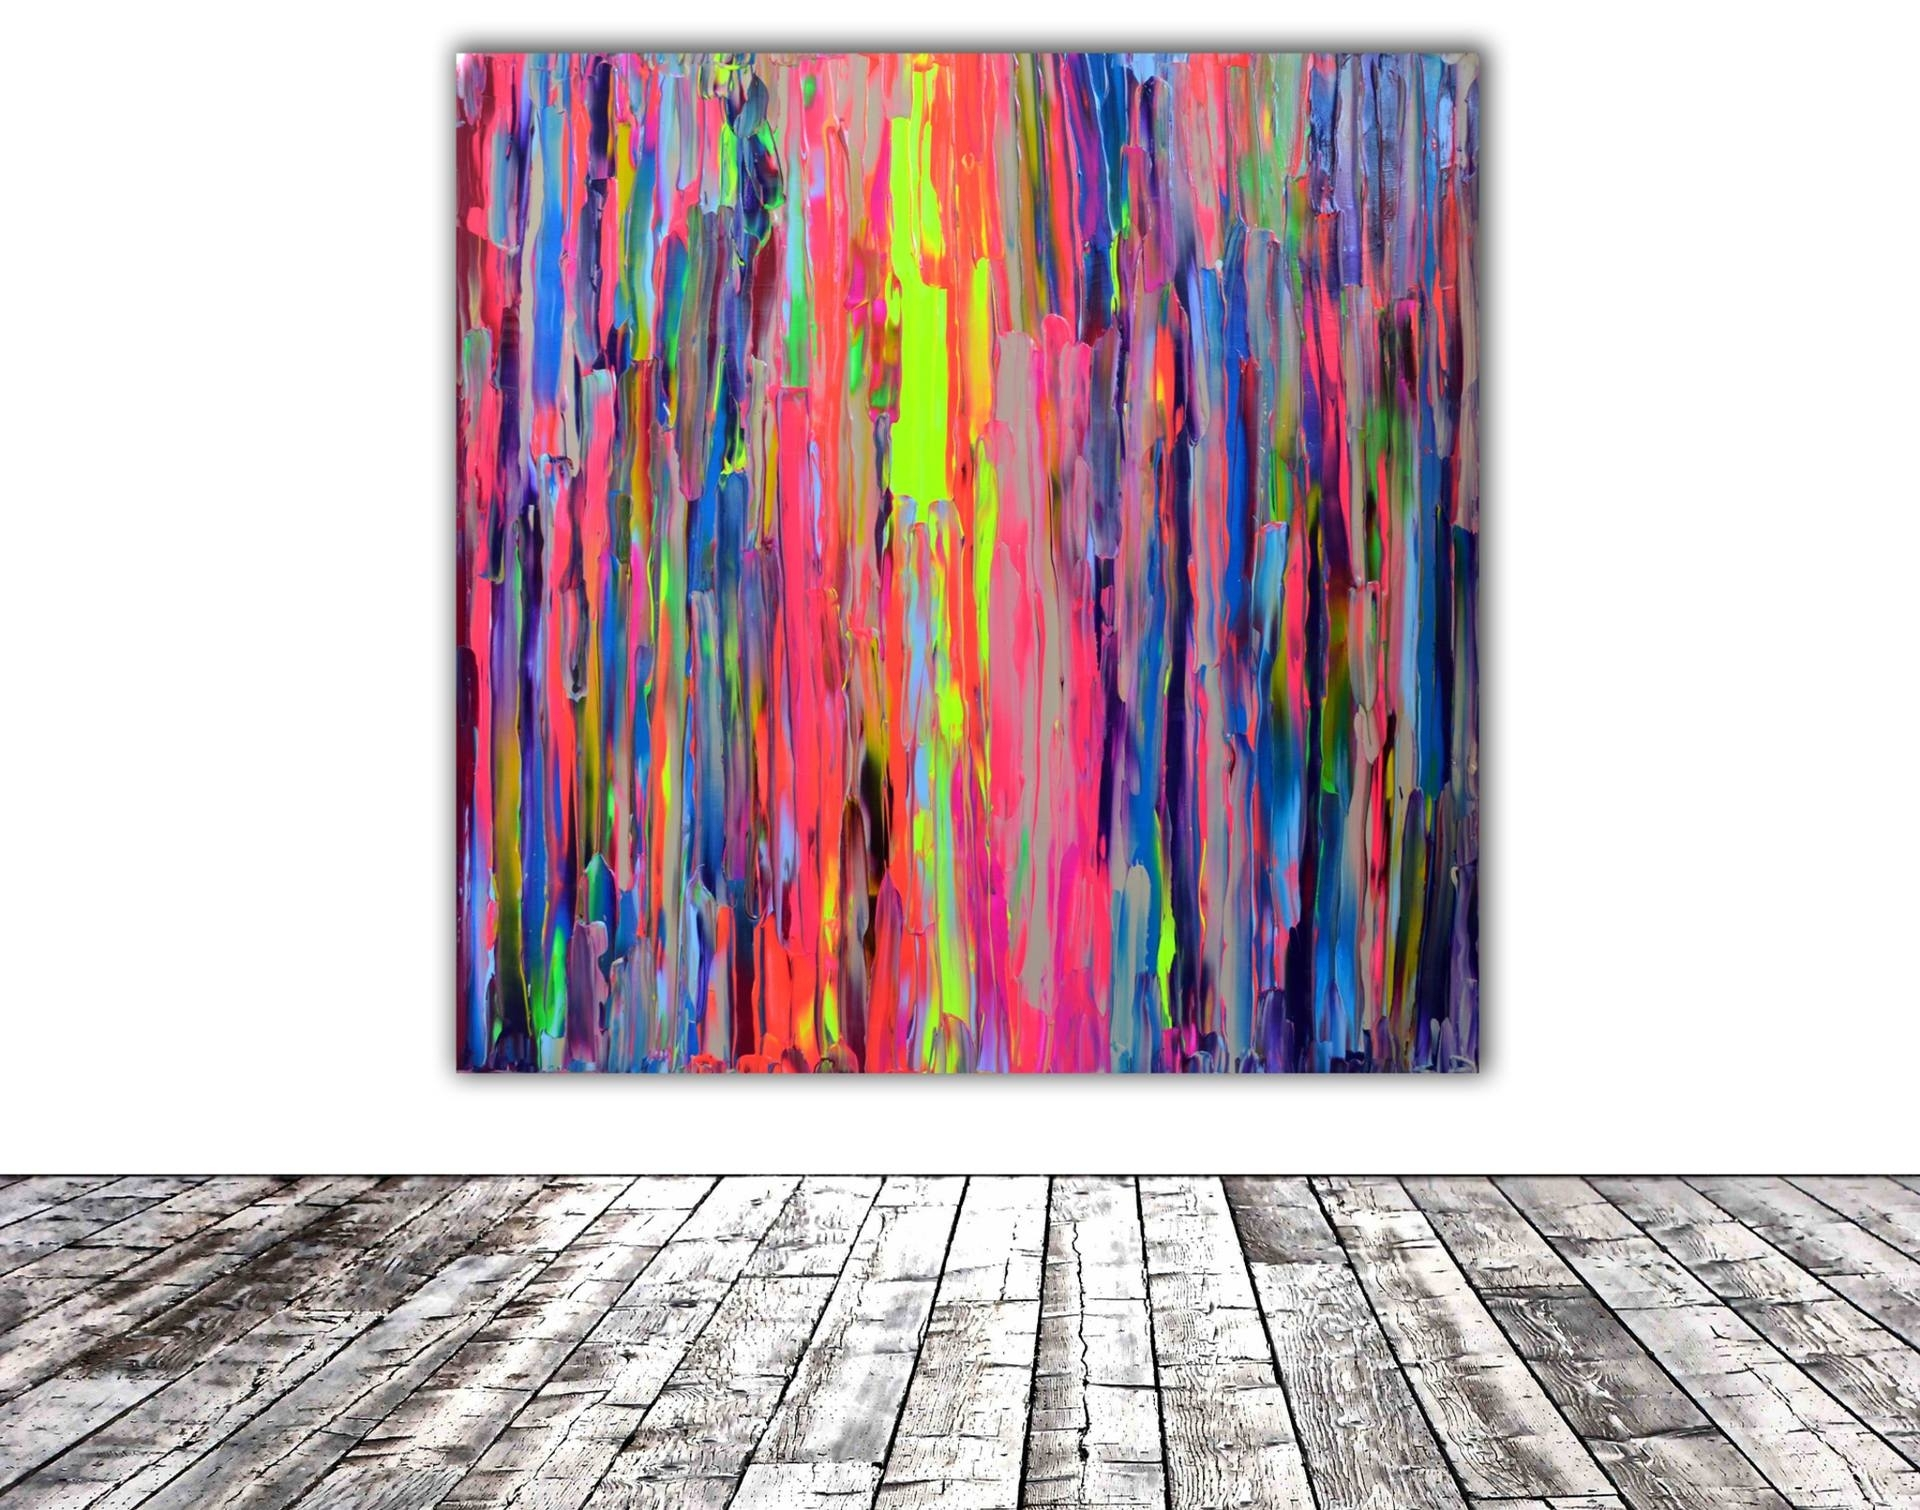 Saatchi Art: Gypsy Happiness – 100X100 Cm Xl Big Painting, Large With Regard To Most Current Happiness Abstract Wall Art (View 18 of 20)